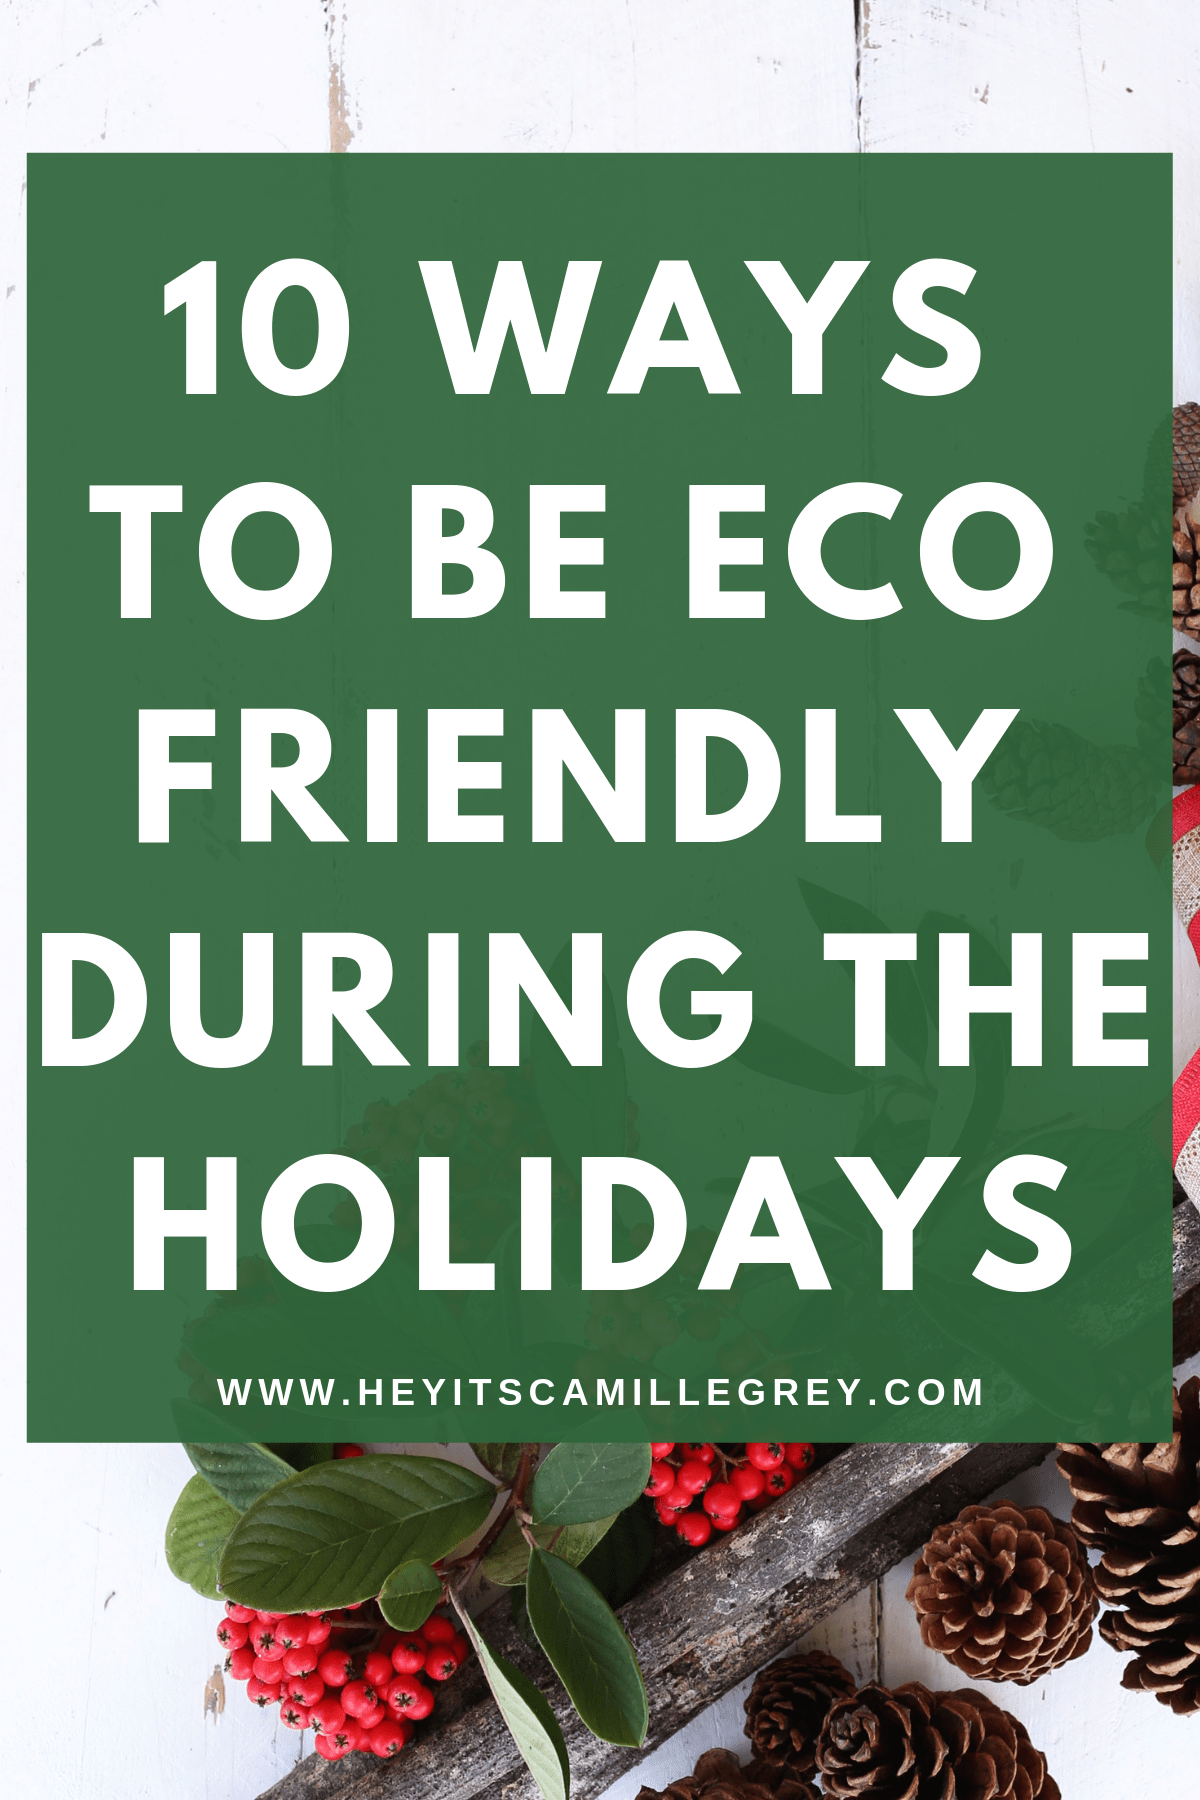 10 Ways to Be Eco Friendly During the Holidays | Hey Its Camille Grey